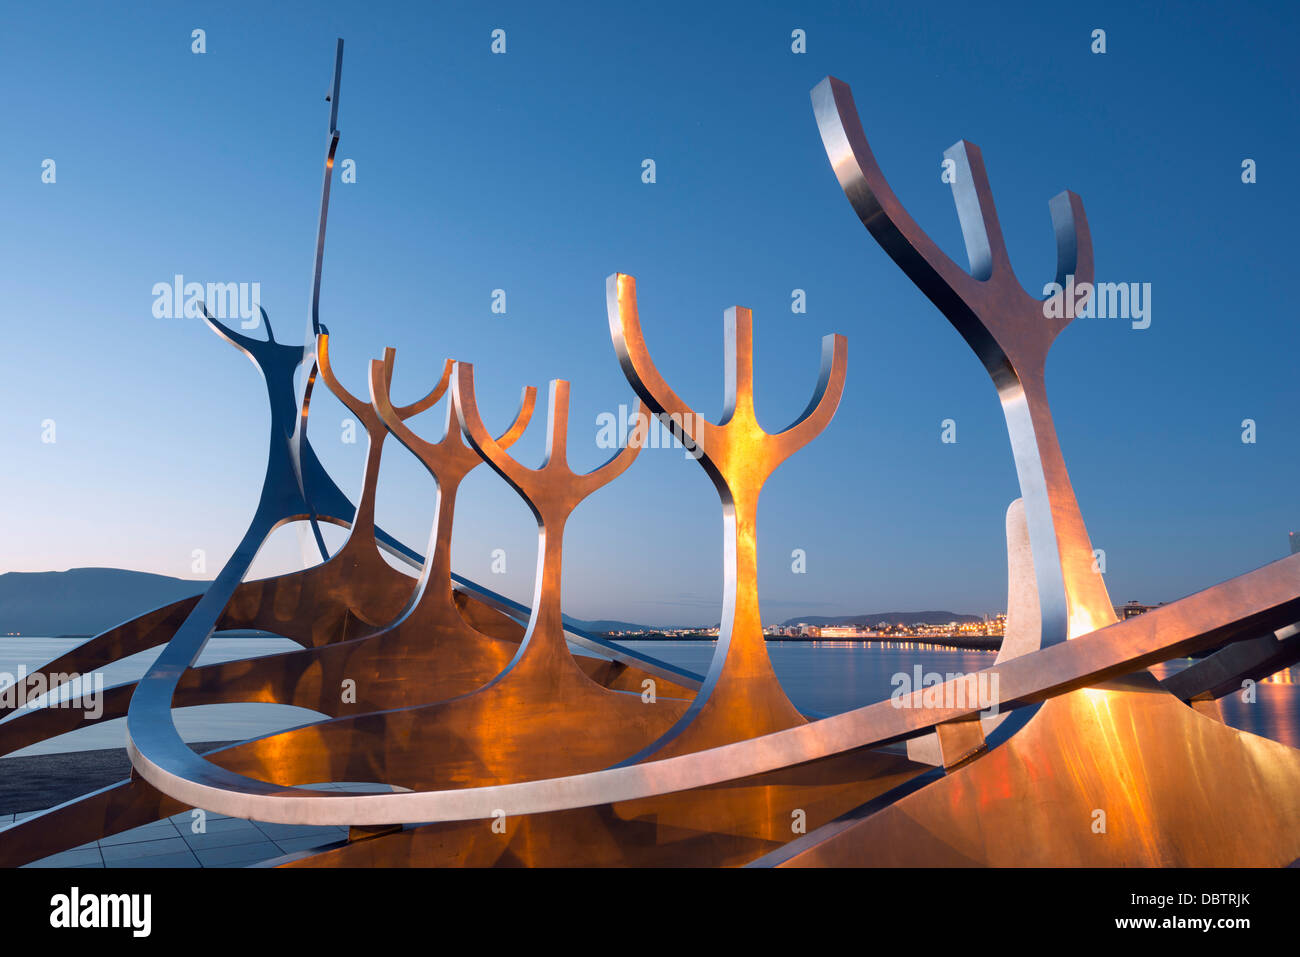 Iceland, Reykjavik, Solfar (Sun Voyager), iconic stainless-steel modern sculpture representing a Viking longboat - Stock Image